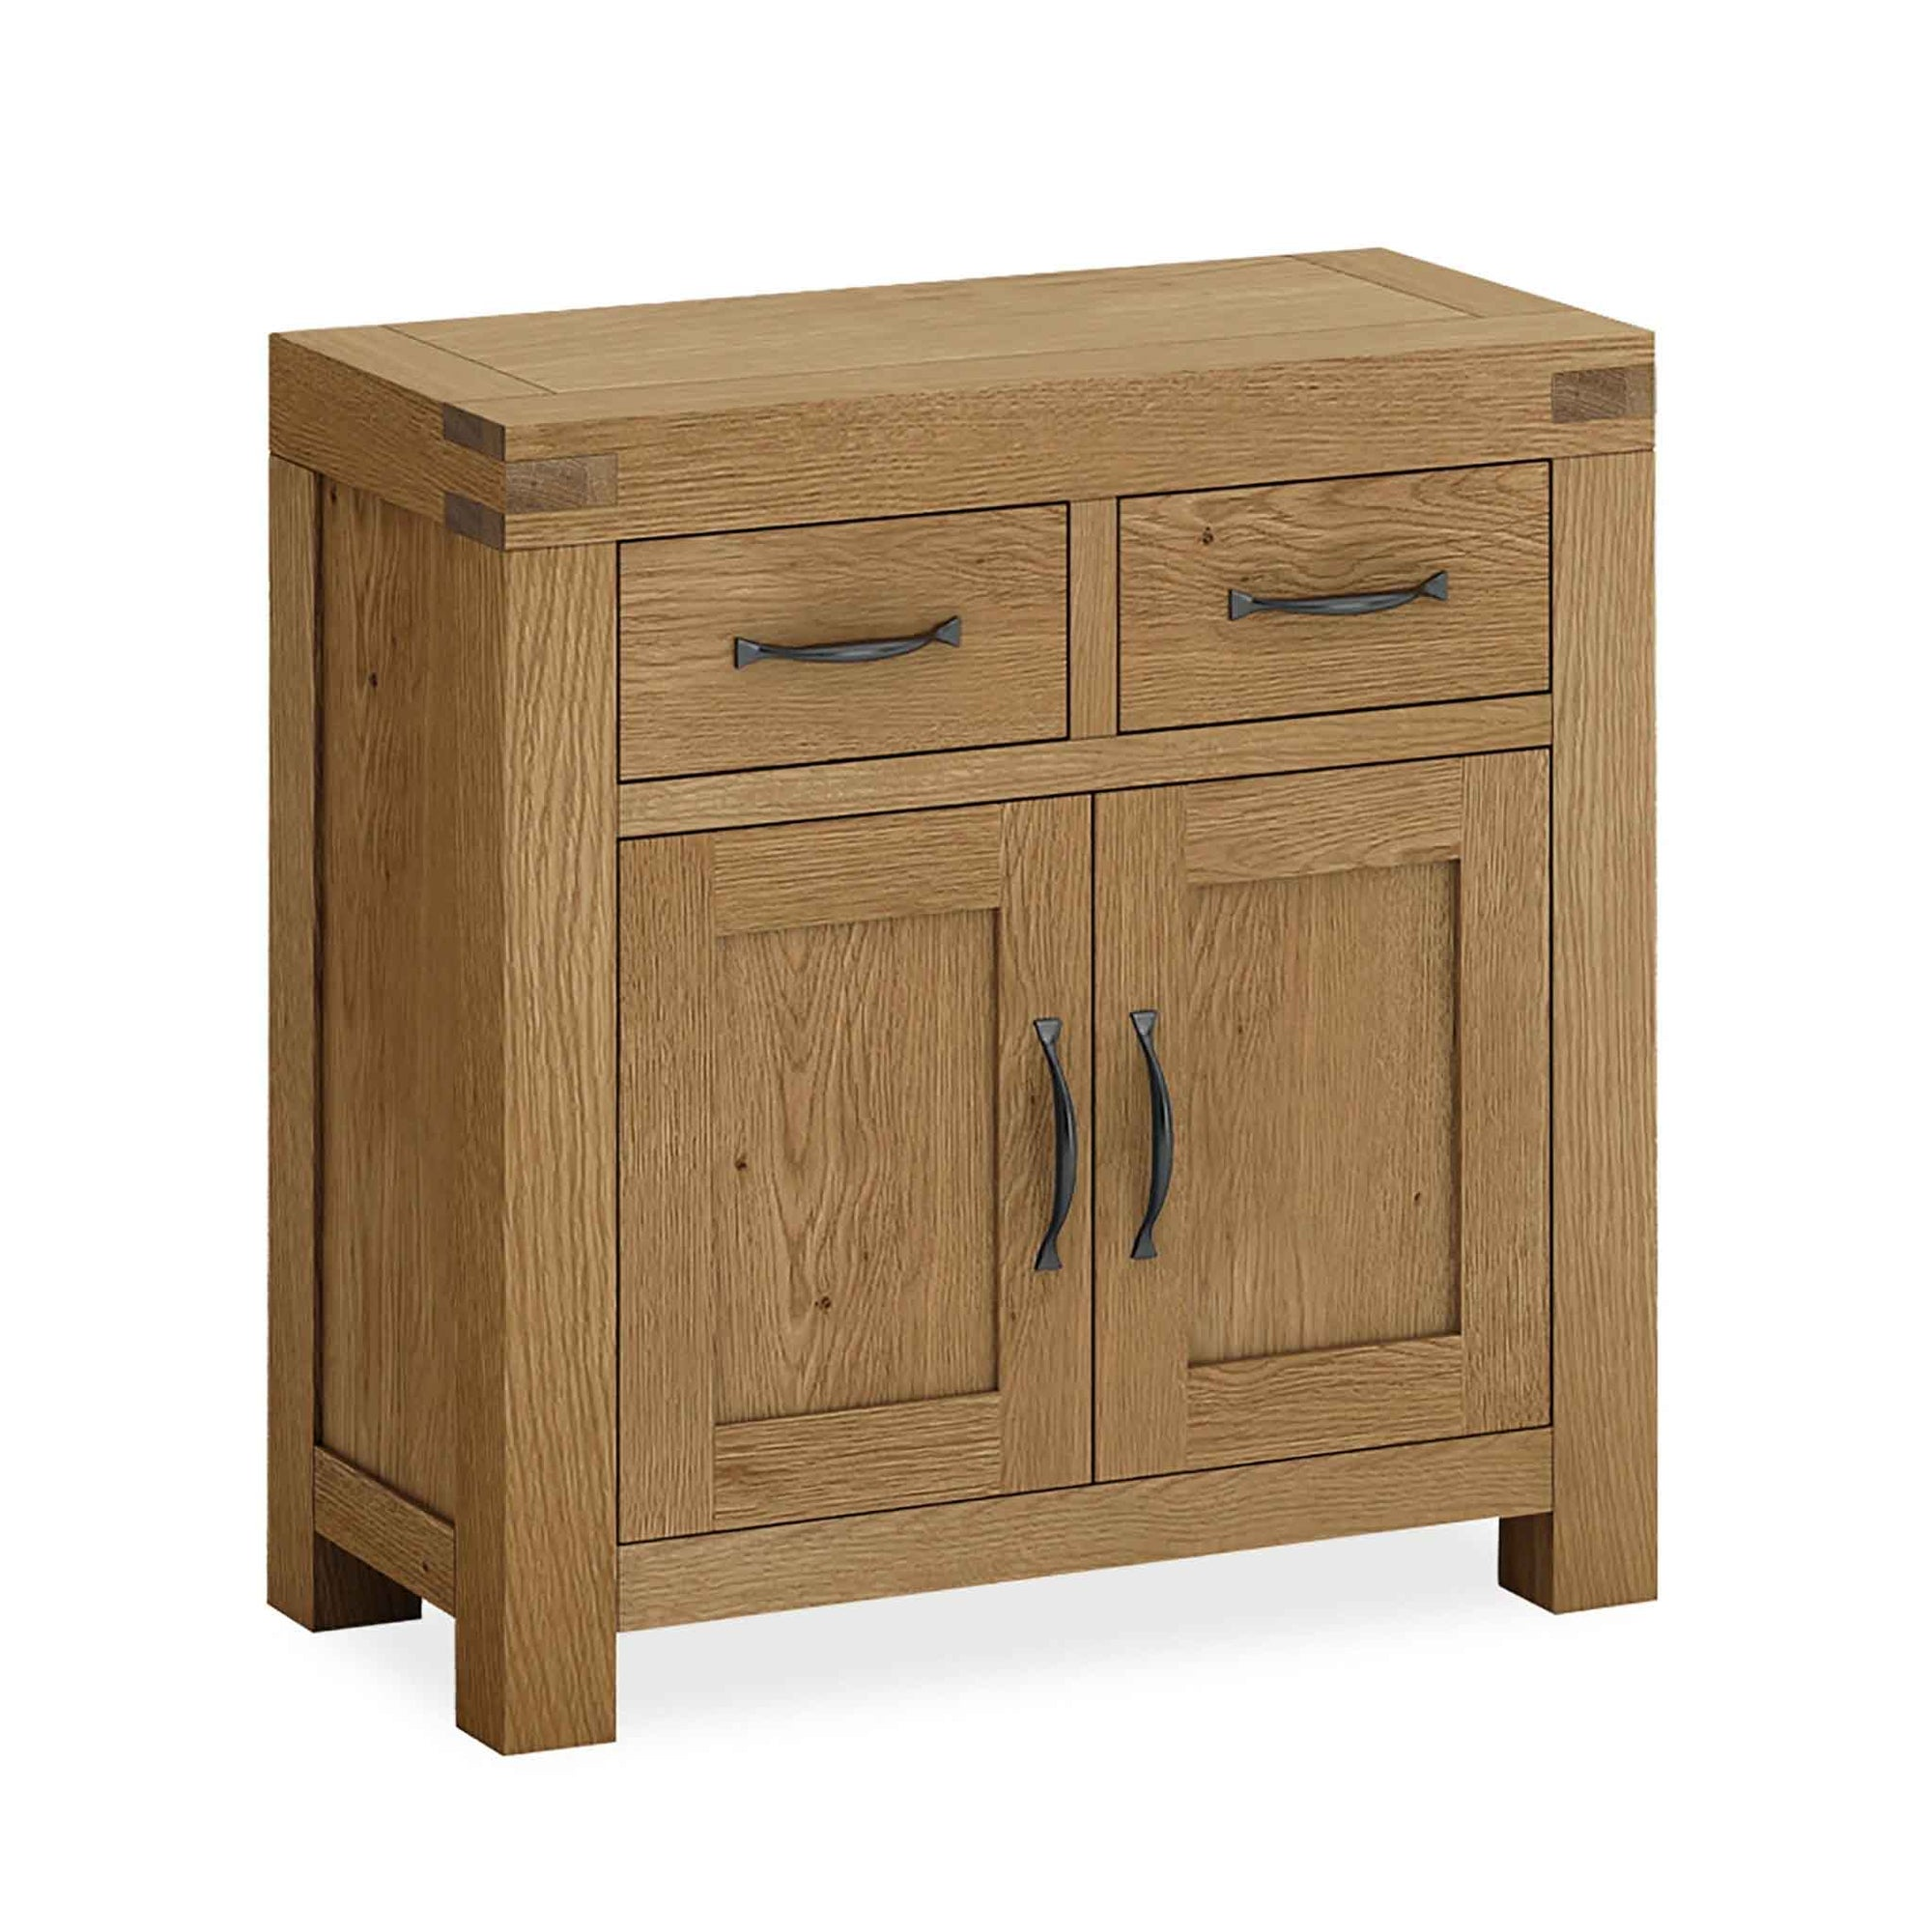 The Abbey Grande Oak Mini Sideboard by Roseland Furniture